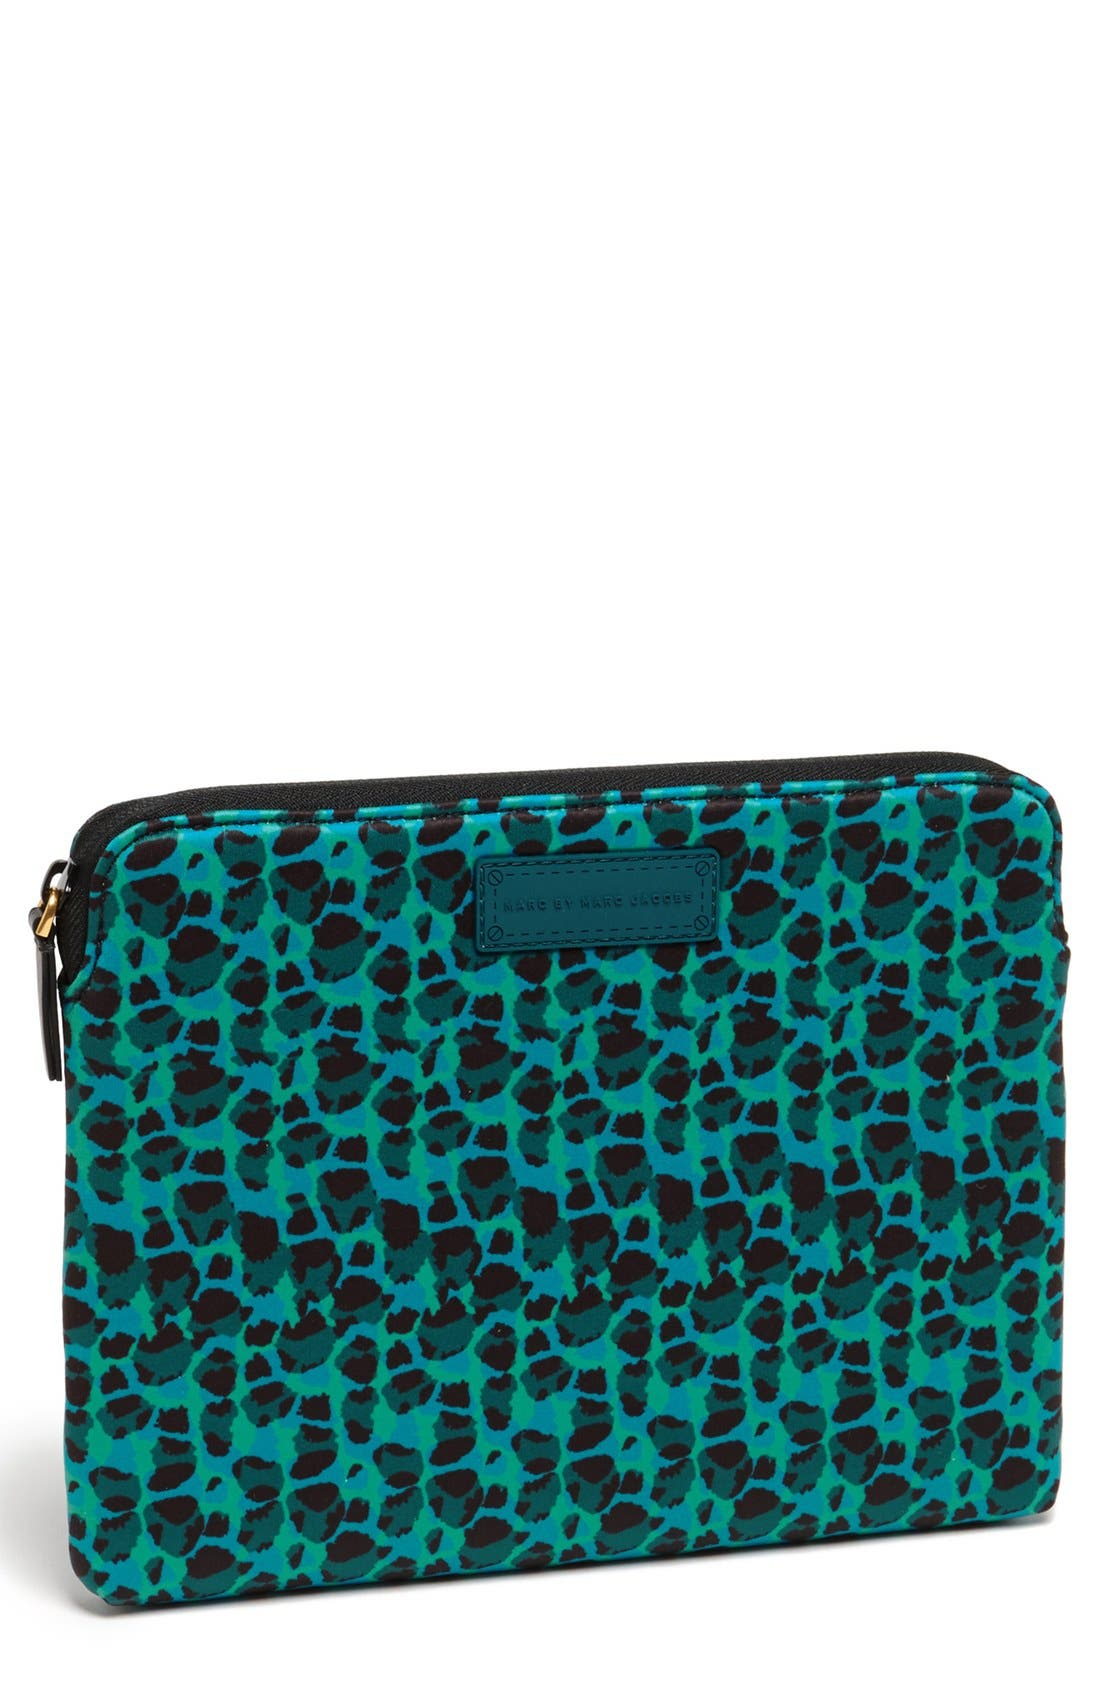 Alternate Image 1 Selected - MARC BY MARC JACOBS 'Walk a Thin Line' Tablet Case